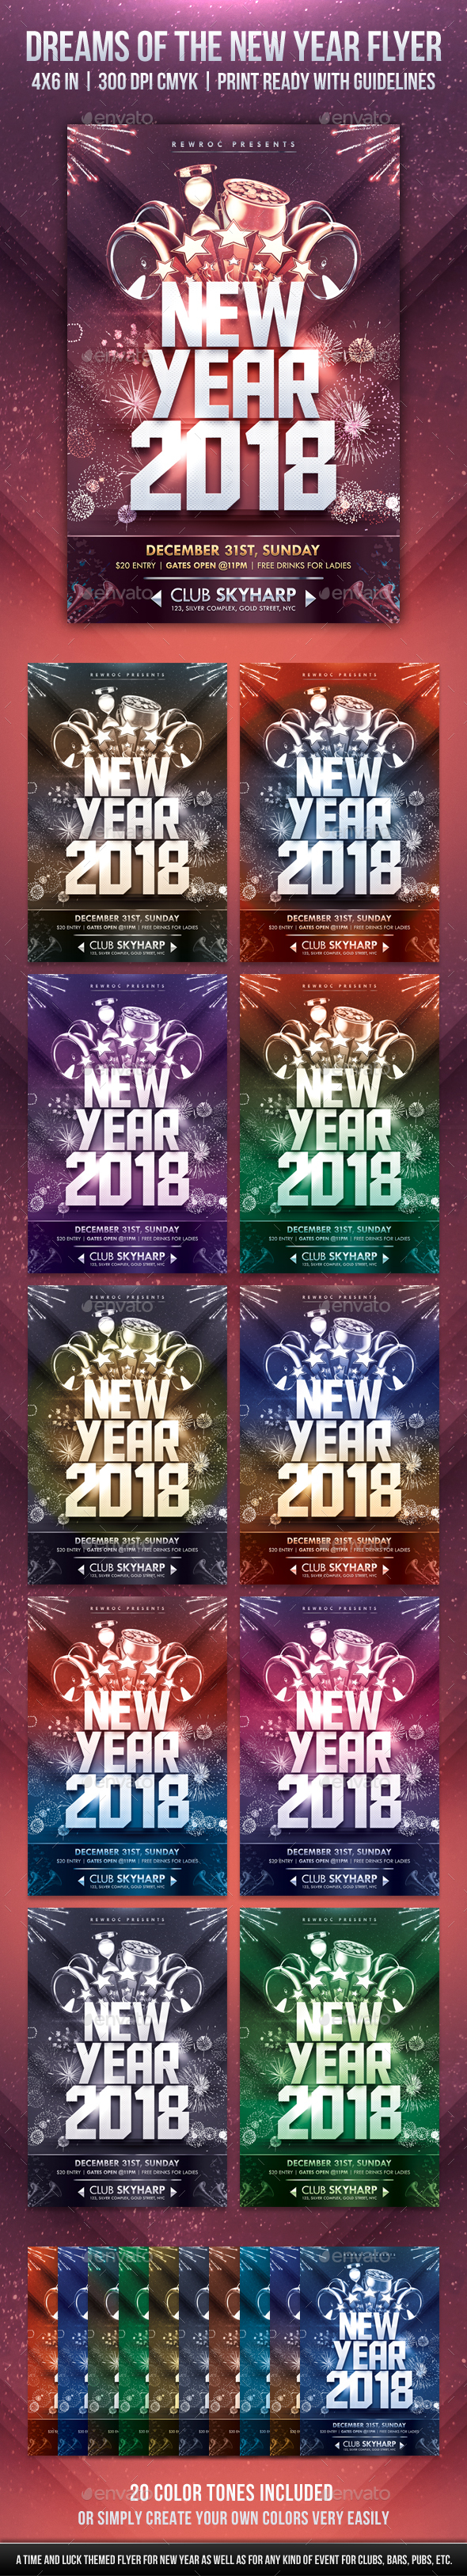 Dreams Of The New Year Flyer - Holidays Events